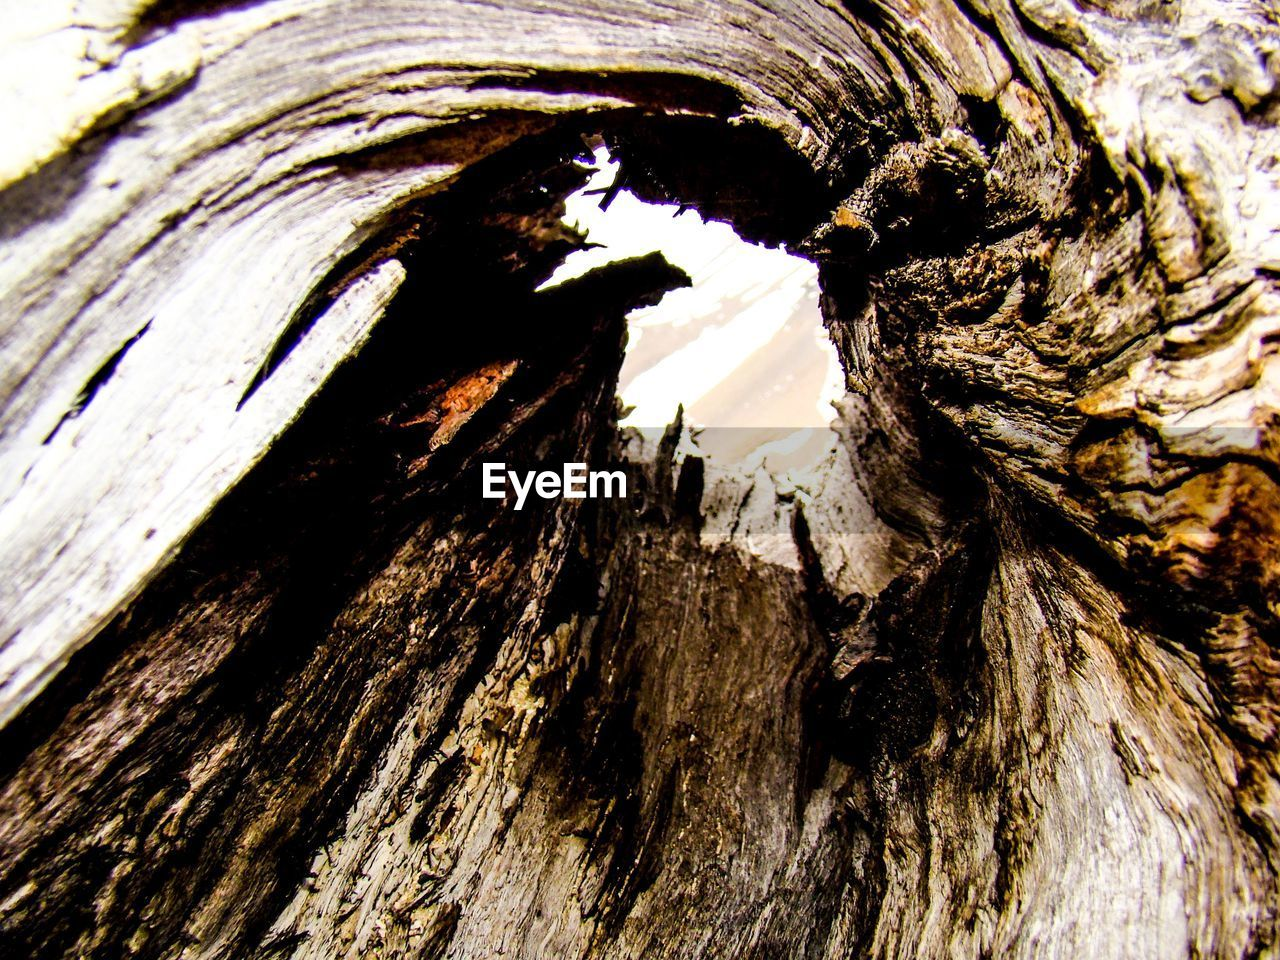 tree trunk, textured, bark, rough, tree, knotted wood, nature, geology, wood - material, no people, full frame, cave, day, close-up, beauty in nature, stalactite, backgrounds, outdoors